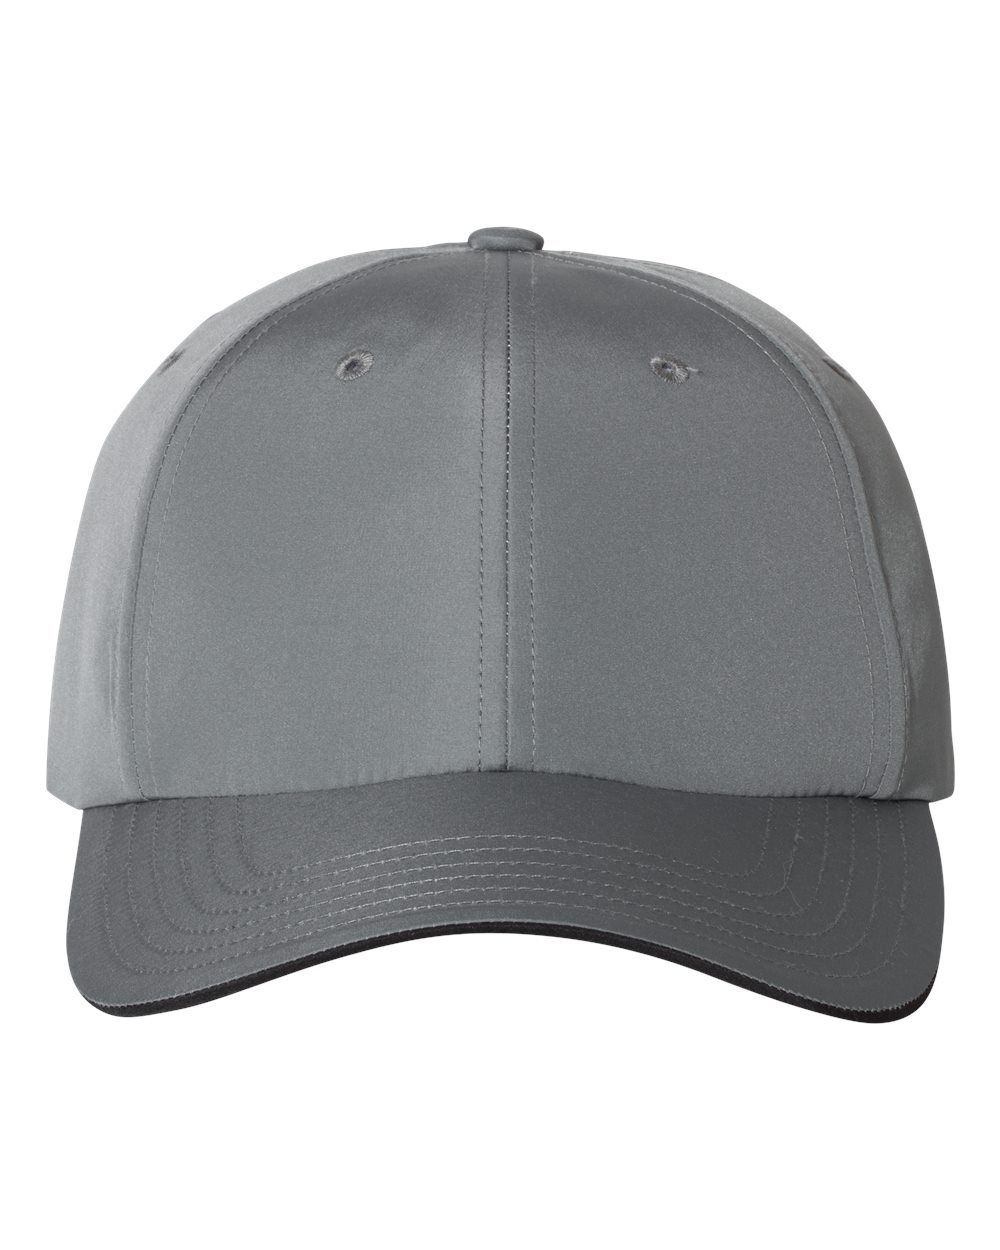 7d72a0f25fa5c Adidas Performance Relaxed Poly Cap A605   14.58